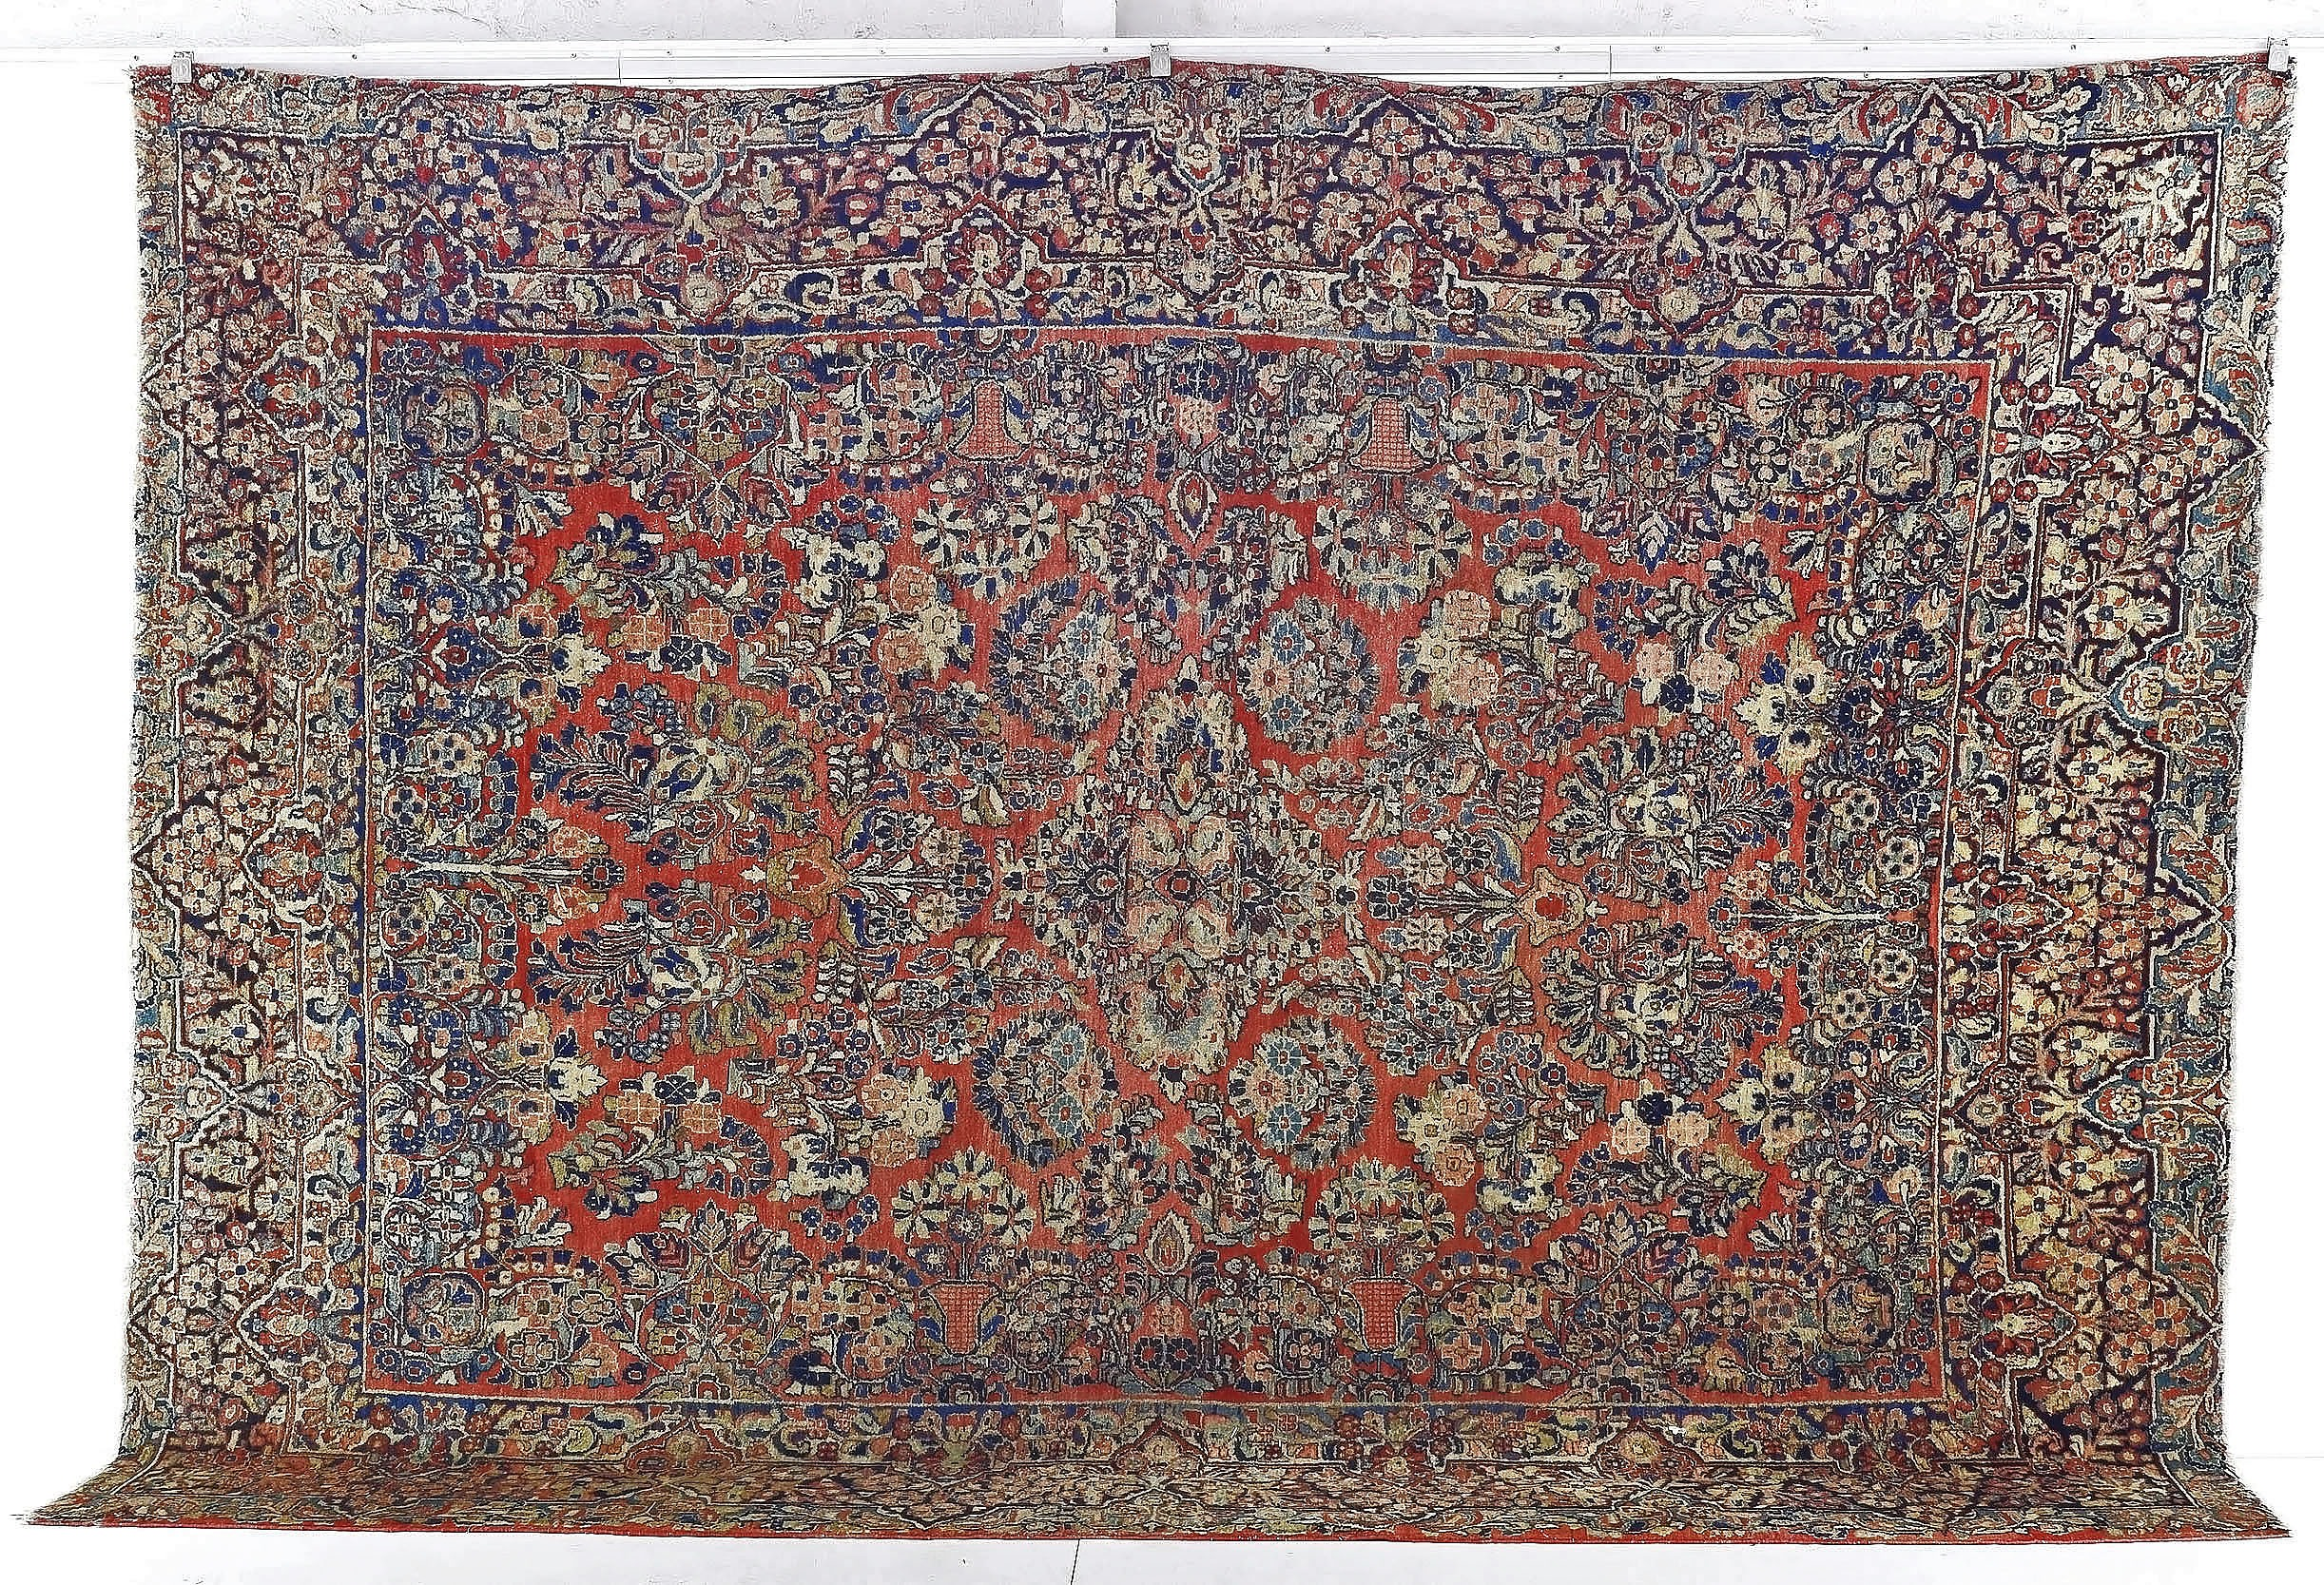 'Antique Persian Sarouk Hand Knotted Wool Pile Carpet'